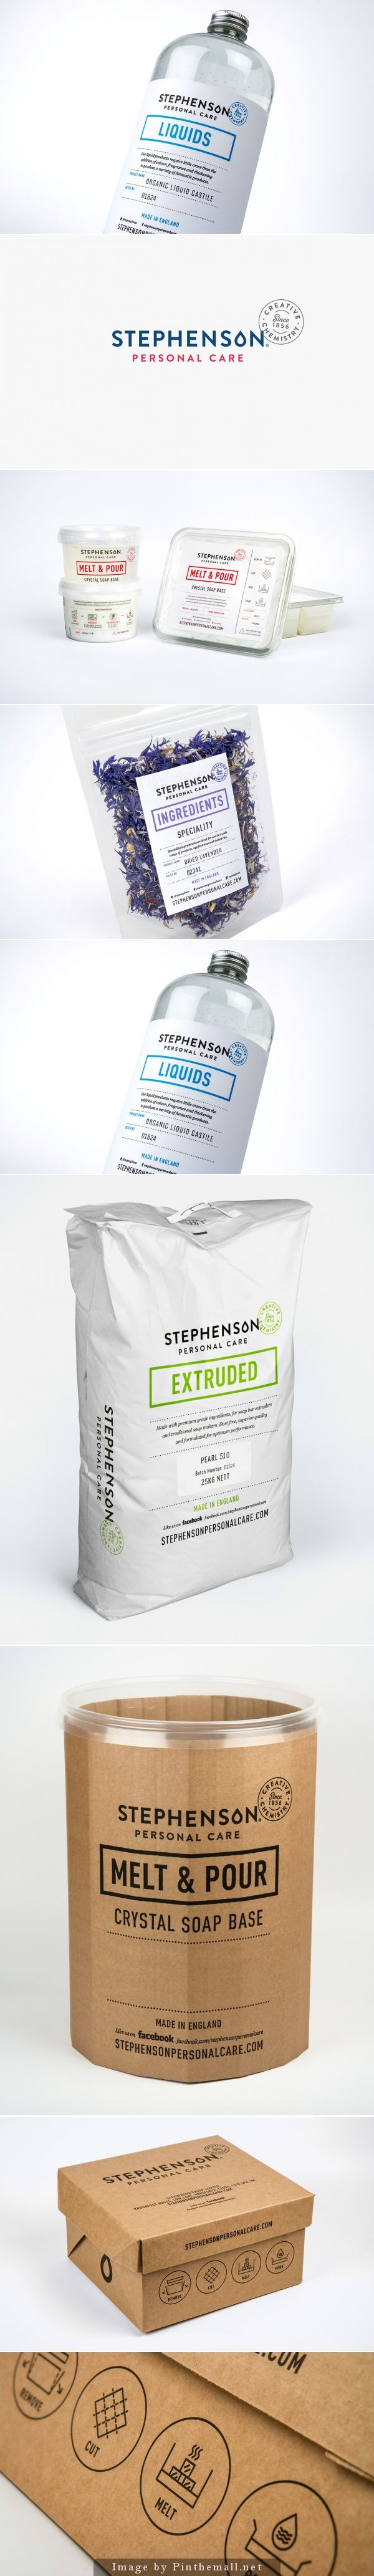 Minimalistic Branding Project: Stephenson Personal Care by Robot Food